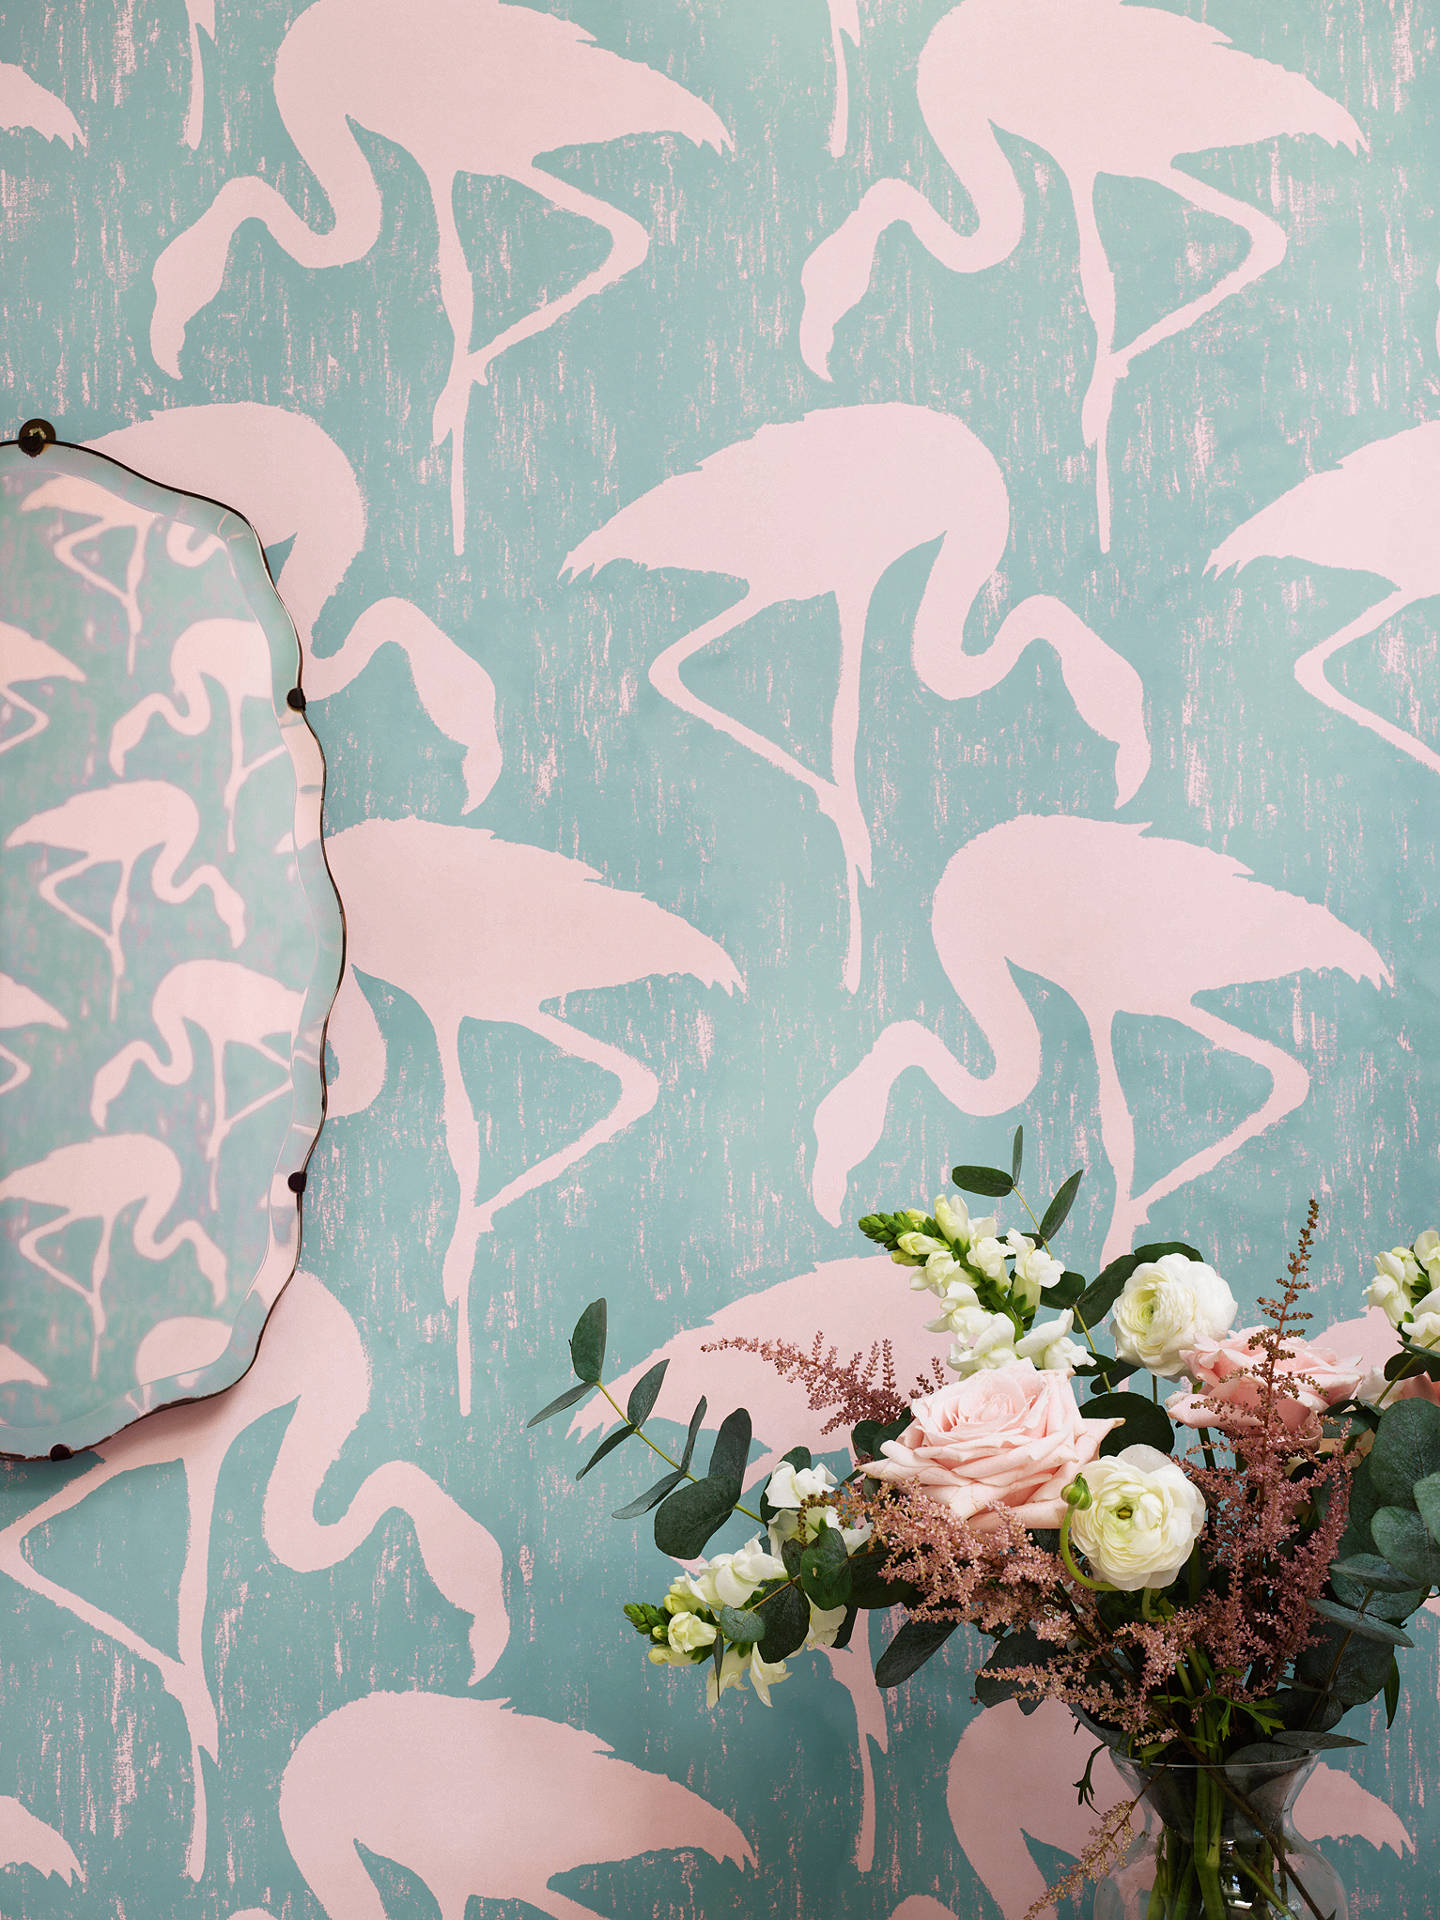 Buy Sanderson Flamingos Wallpaper, Turquoise/Pink, DVIN214569 Online at johnlewis.com